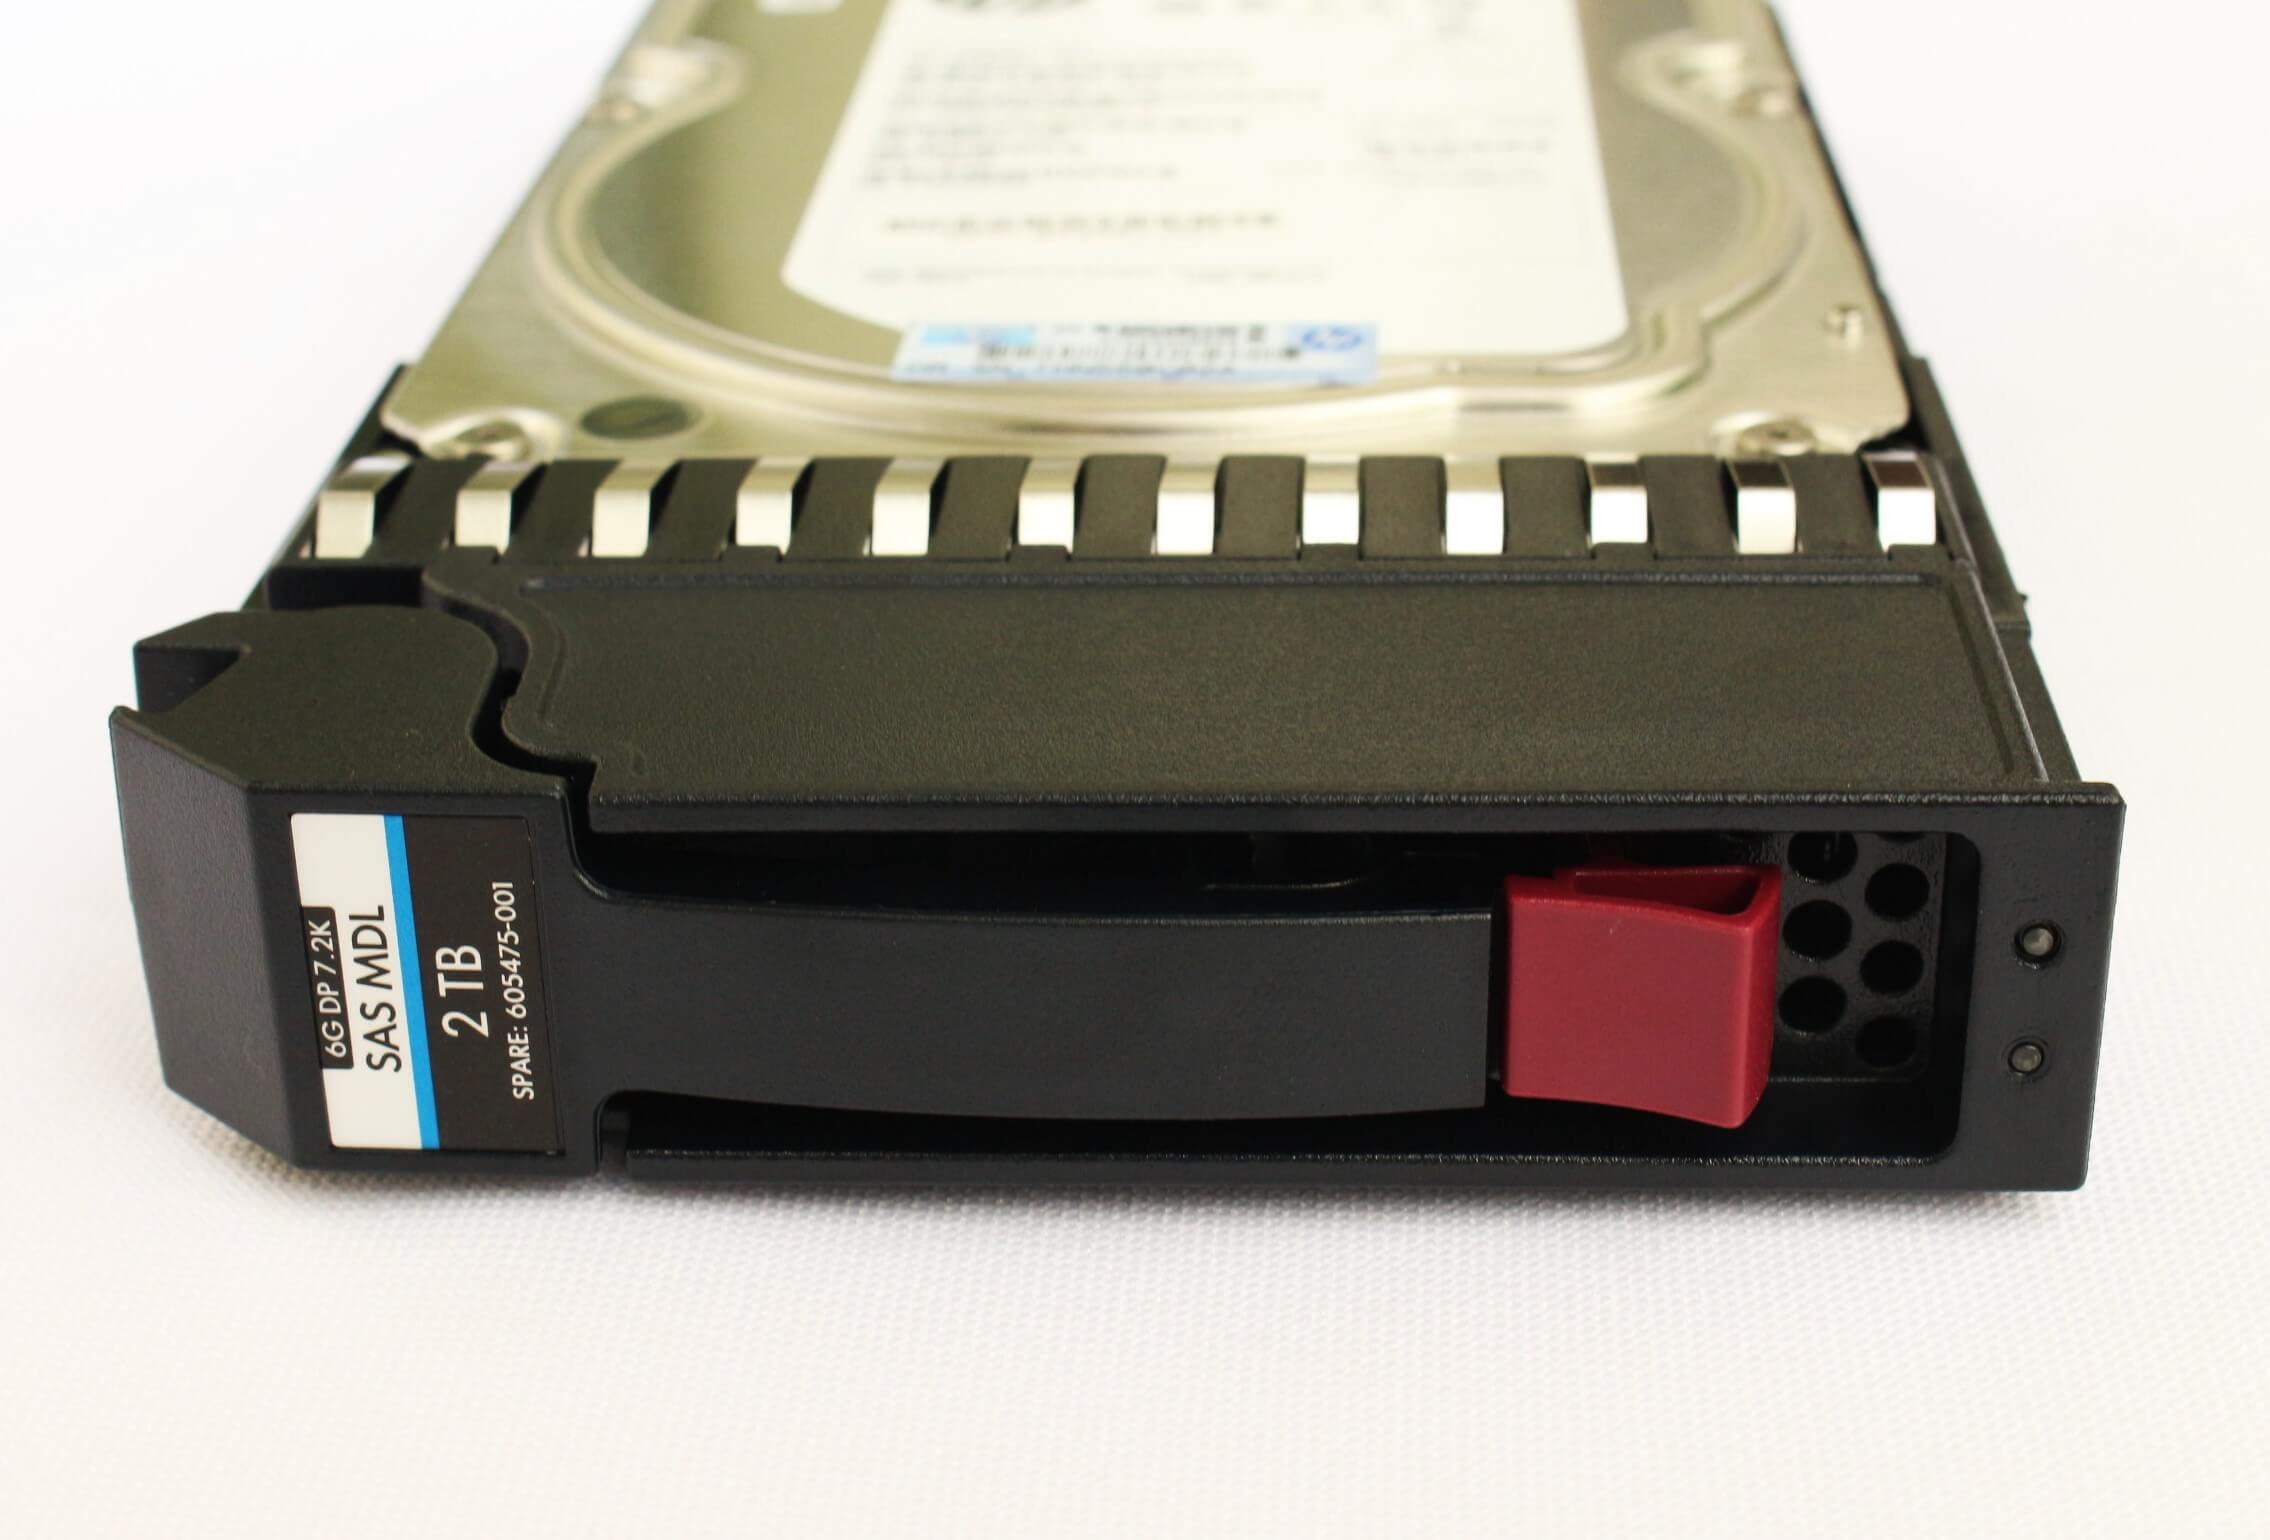 "AW555A HD HP 2TB SAS 6Gb/s DP Enterprise 7.2K LFF Hot-Plug 3,5"" Storage P2000 G3 e MSA foto frontal"